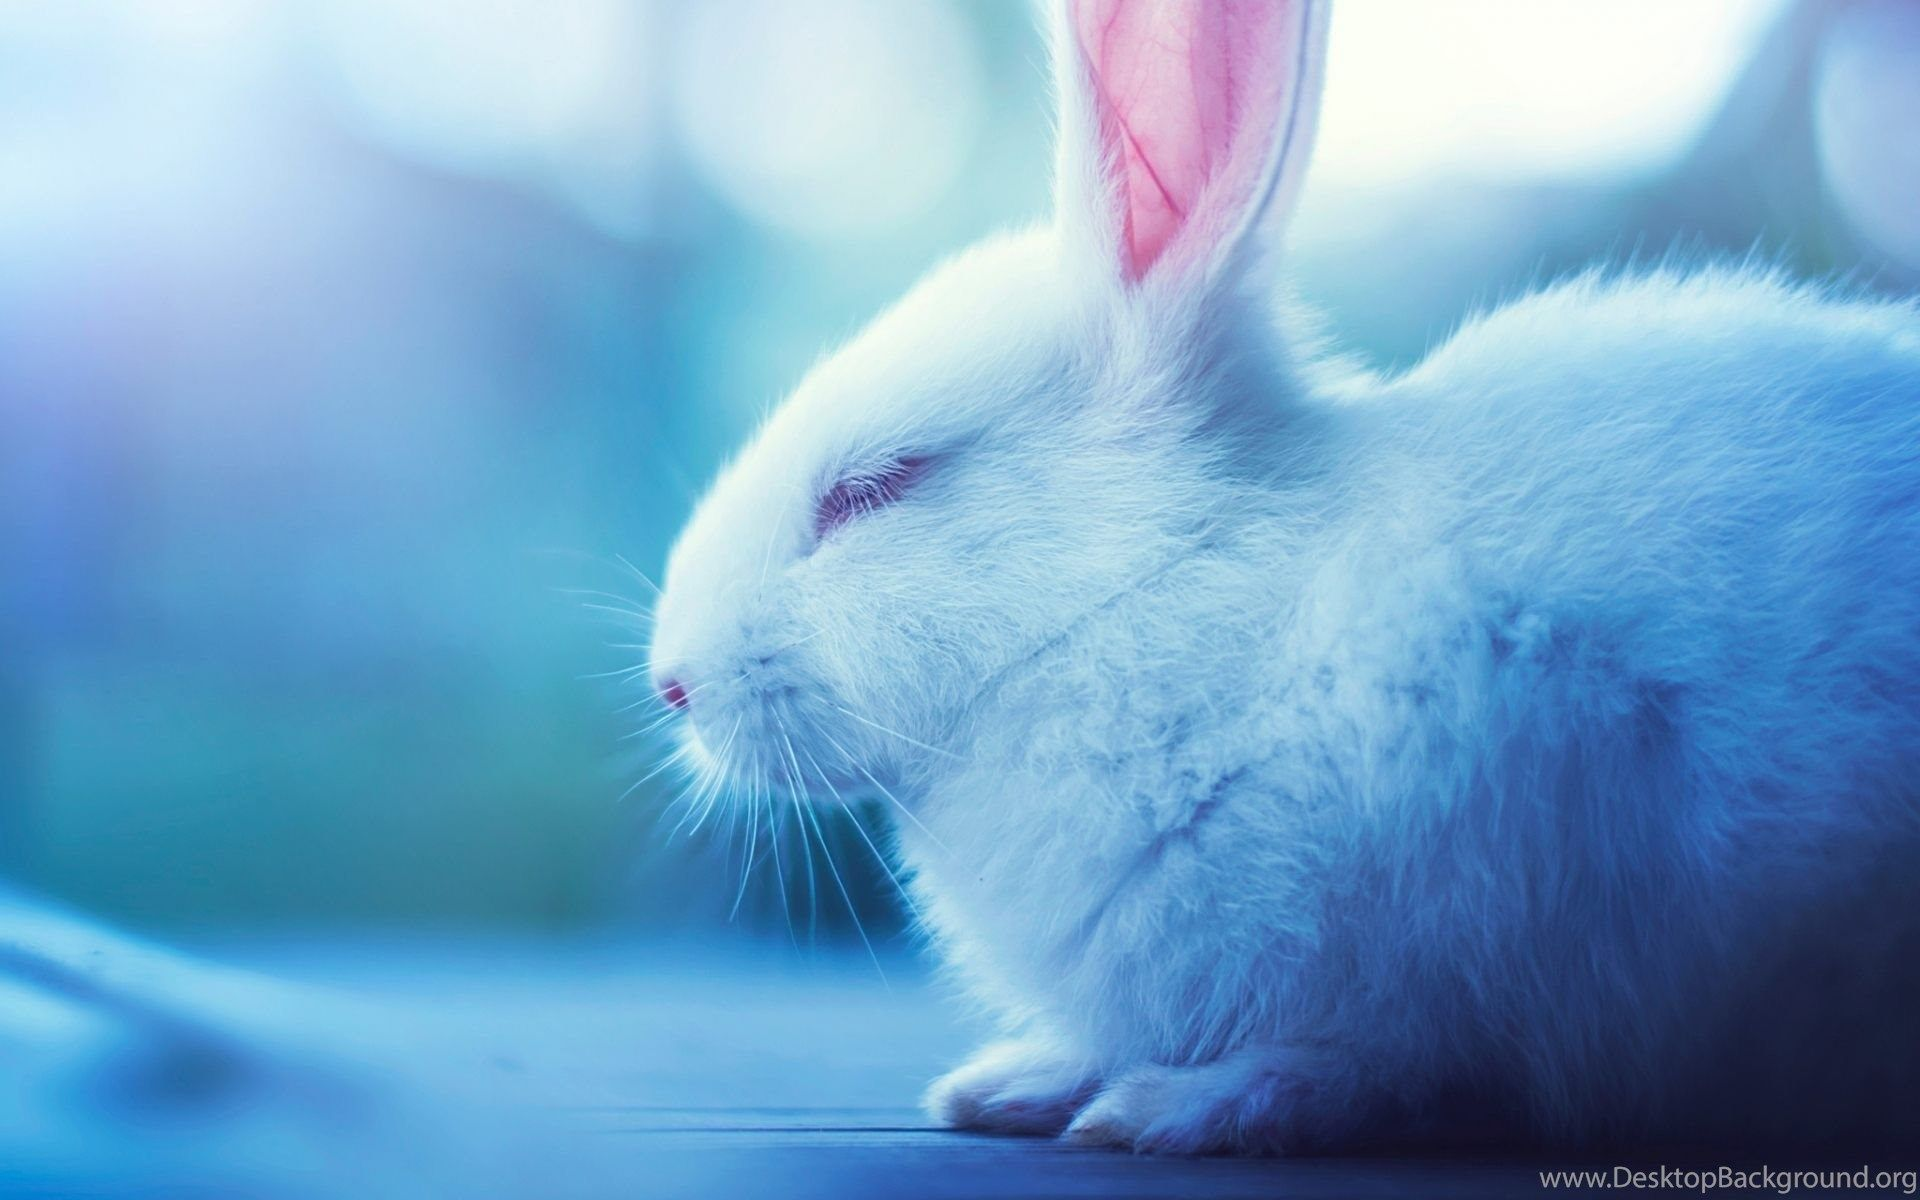 Cute Bunny Desktop Wallpapers Top Free Cute Bunny Desktop